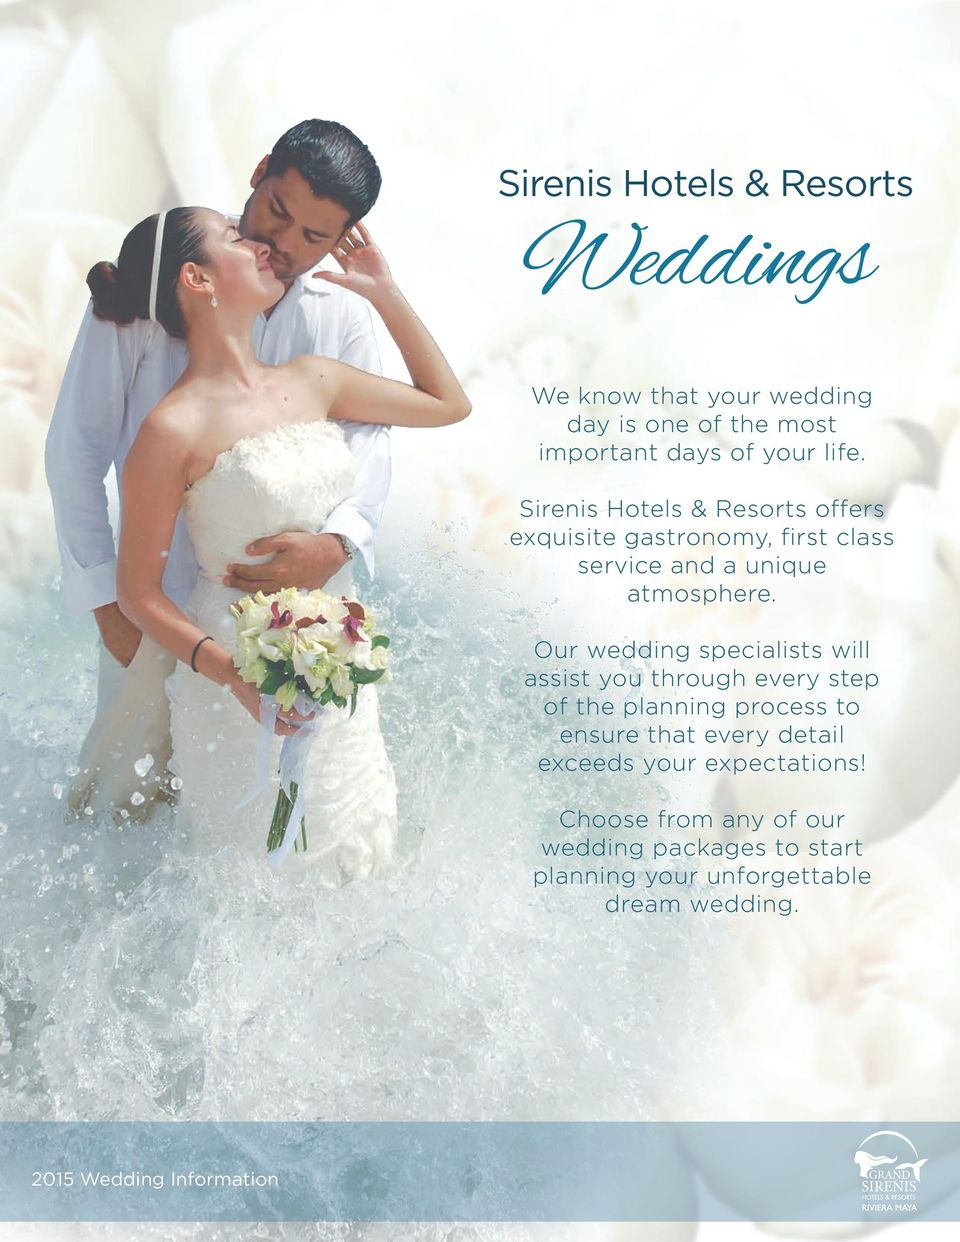 Our wedding specialists will assist you through every step of the planning process to ensure that every detail